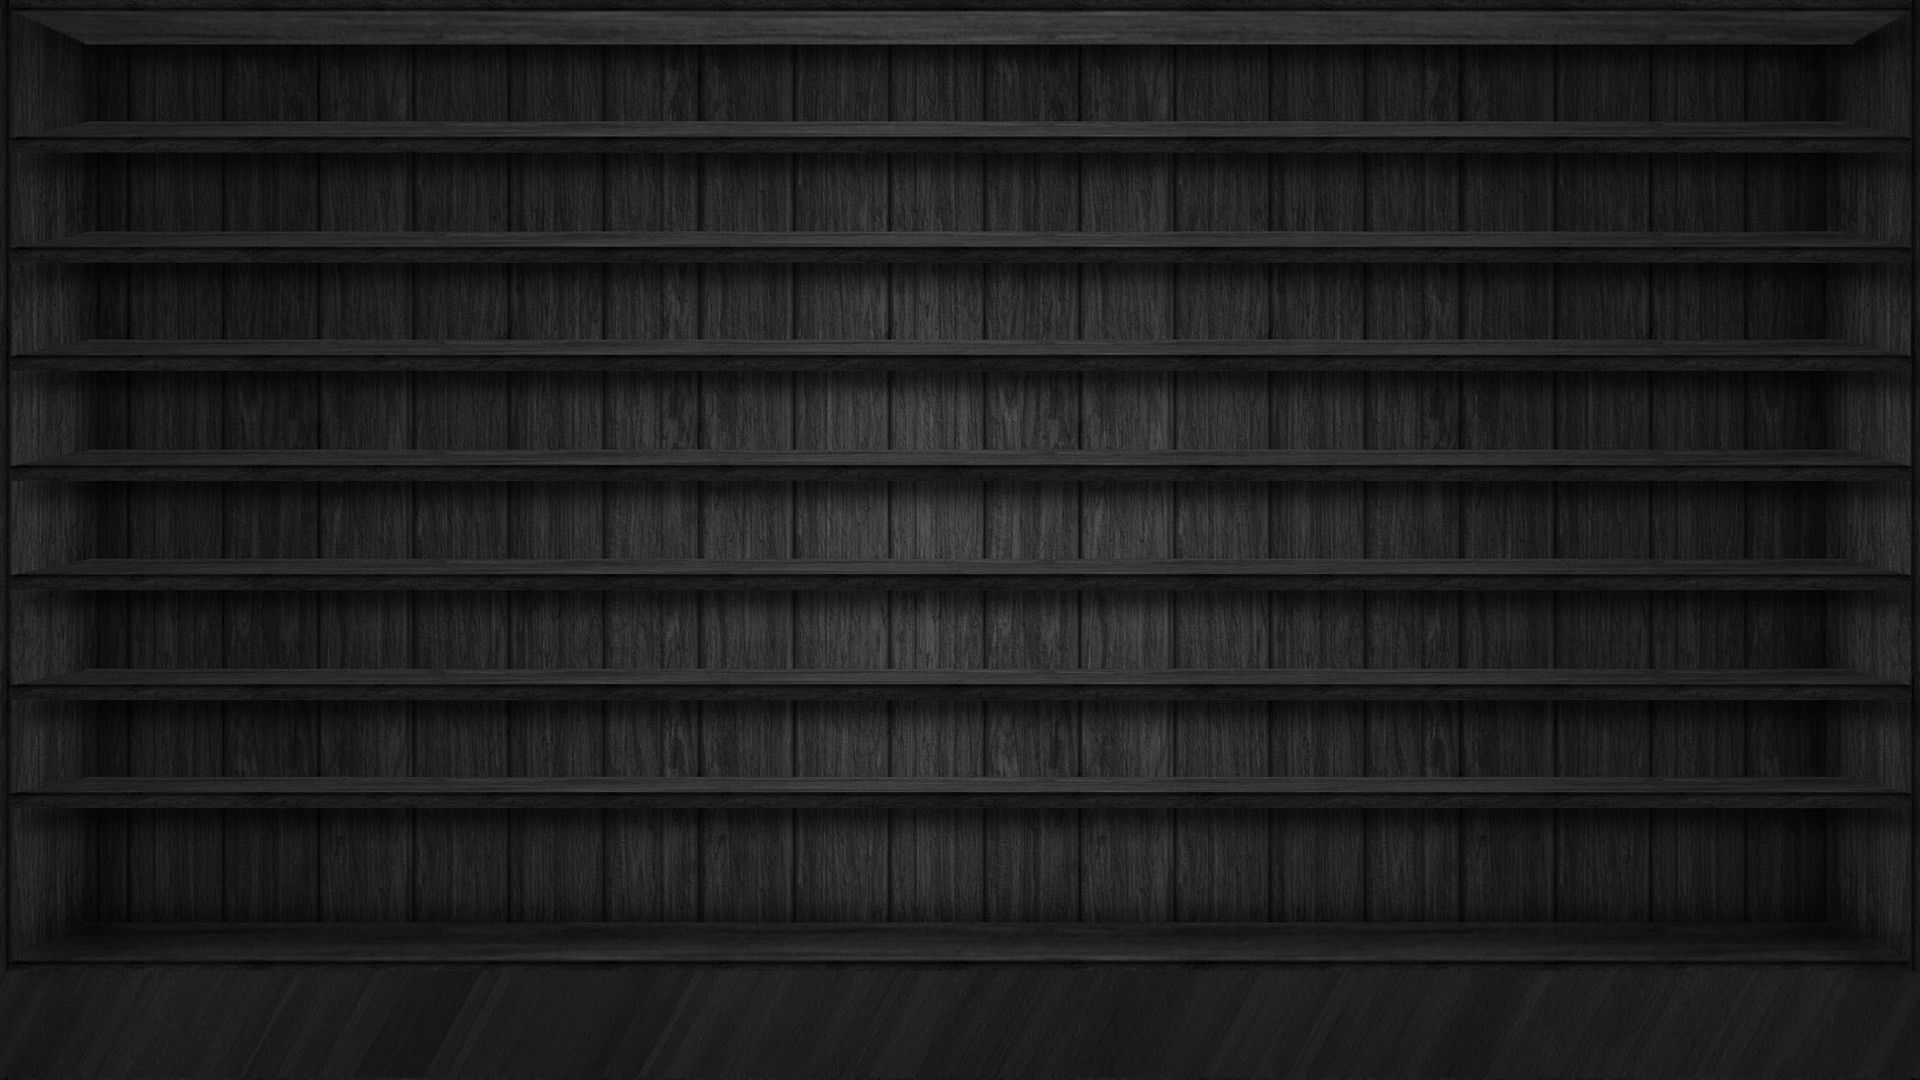 Shelves Wallpapers Top Free Shelves Backgrounds